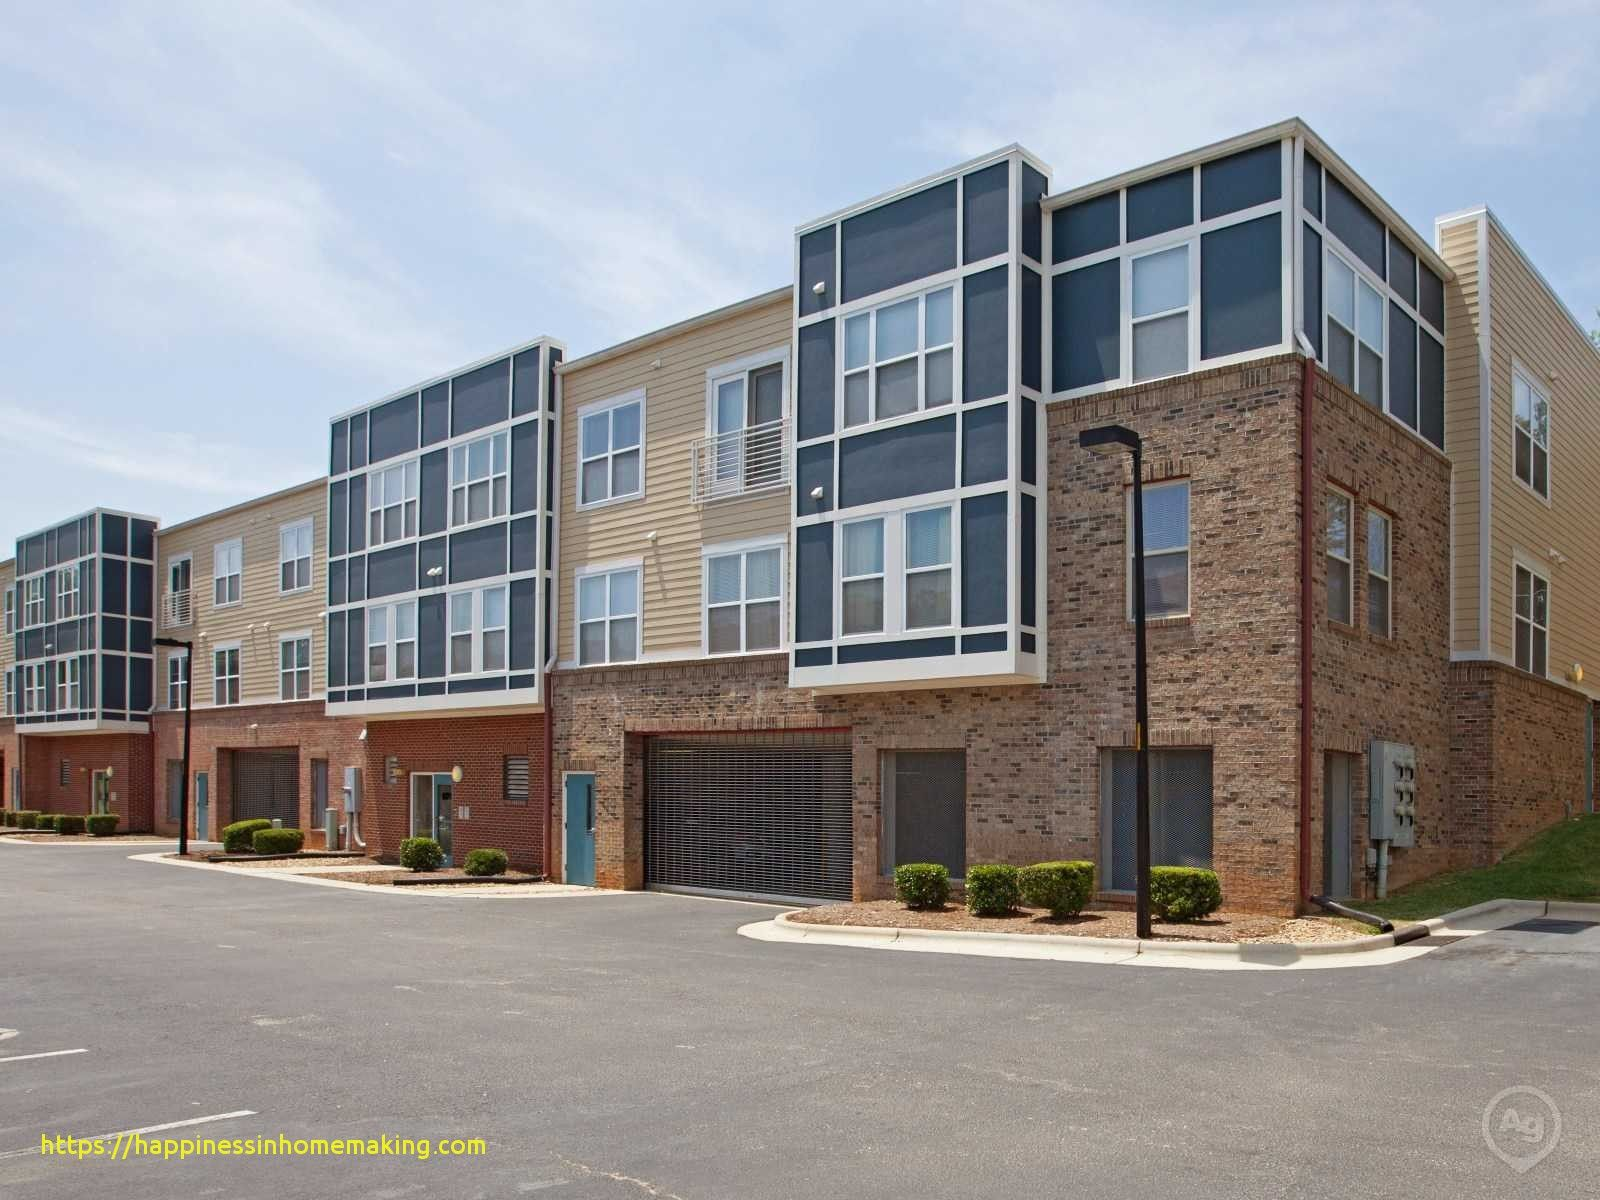 Delightful Find Apartments Near Me   Looking For A Comfortable Occupancy Is Indeed  Difficult. View The Price That Is Increasingly Expensive And The Substitute  To ...